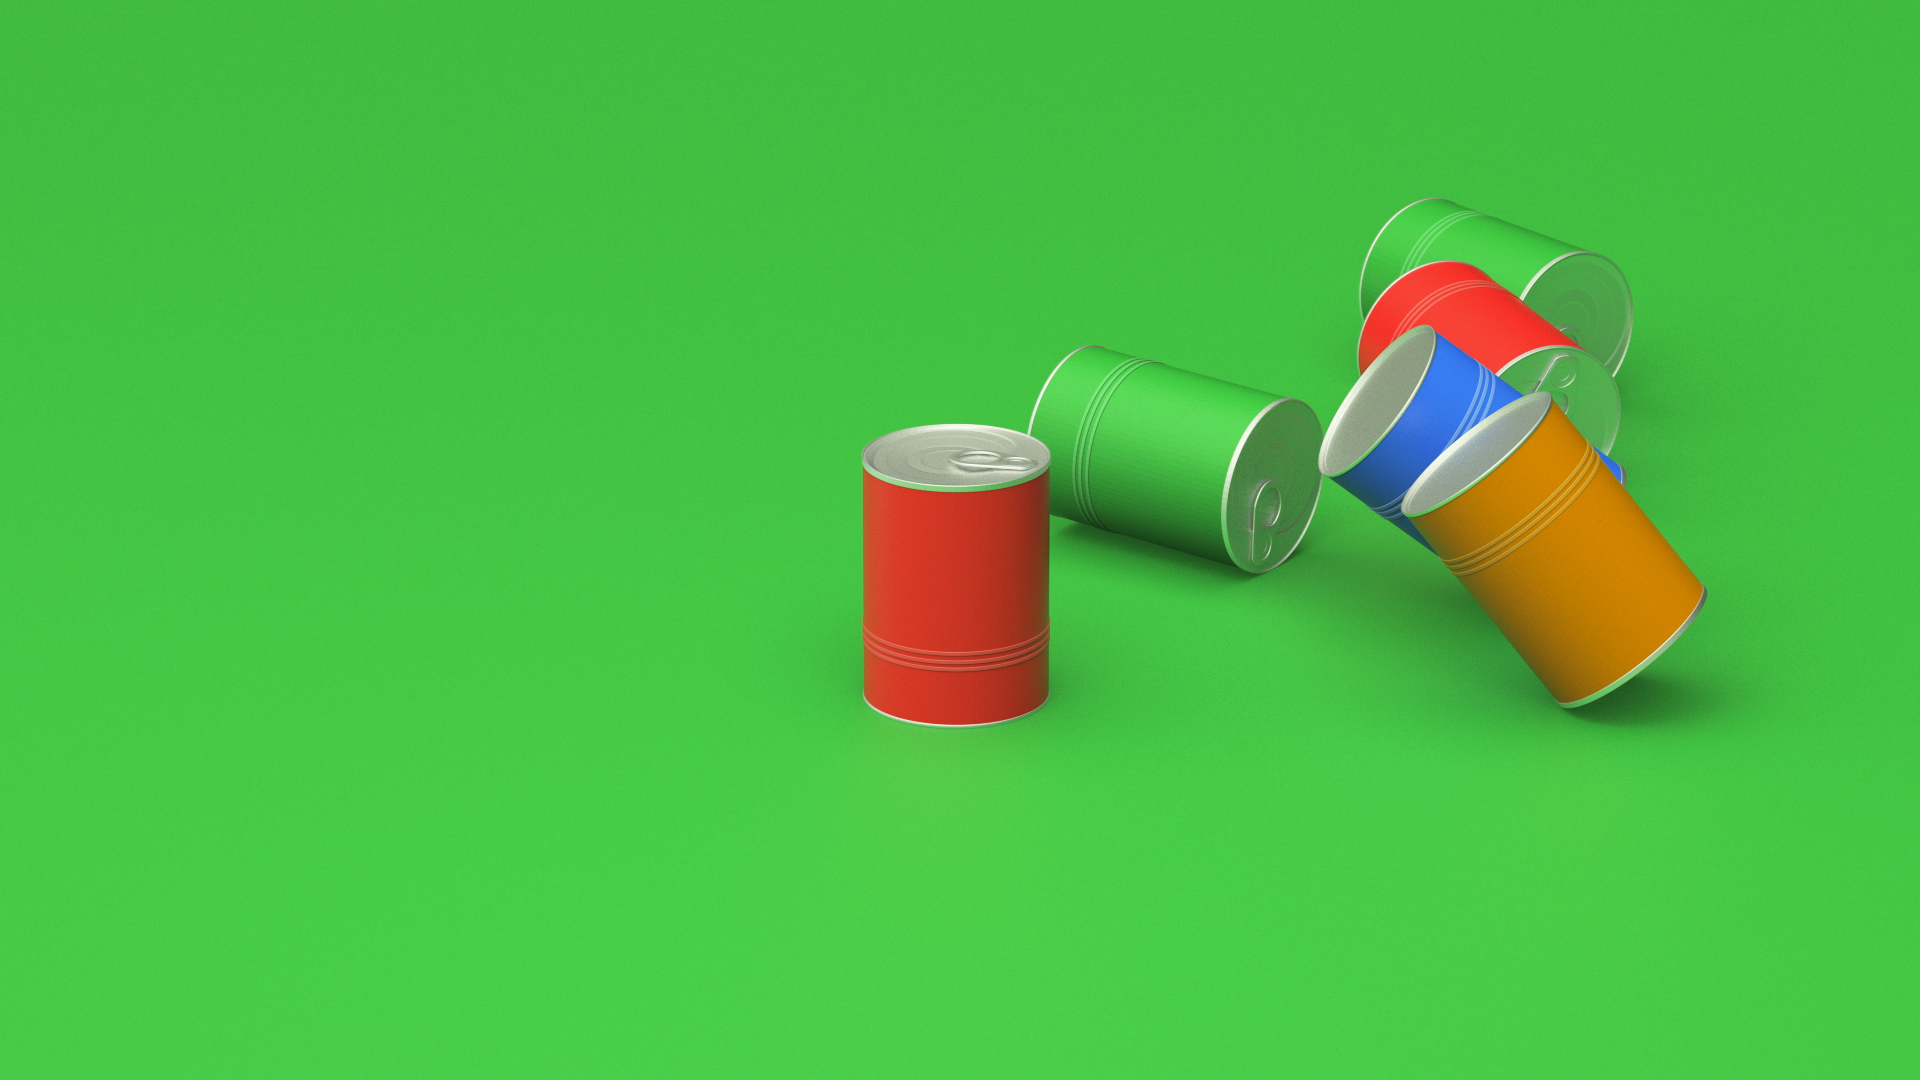 CANS_05_1068.png